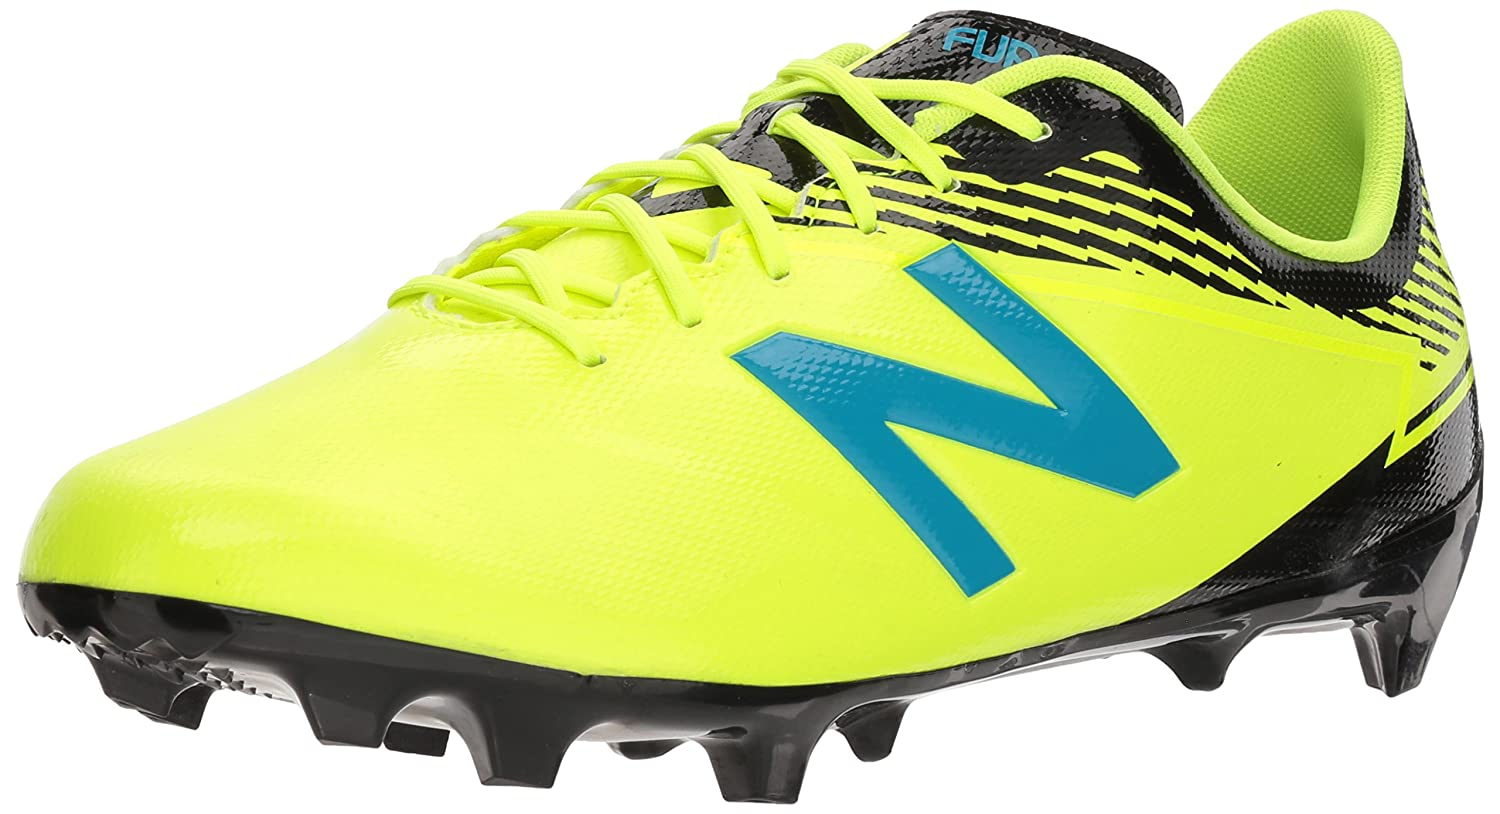 New Balance メンズ Furon 3.0 Dispatch FG B06XWV59JX 10.5 D(M) US|Hi Lite/Maldives Hi Lite/Maldives 10.5 D(M) US